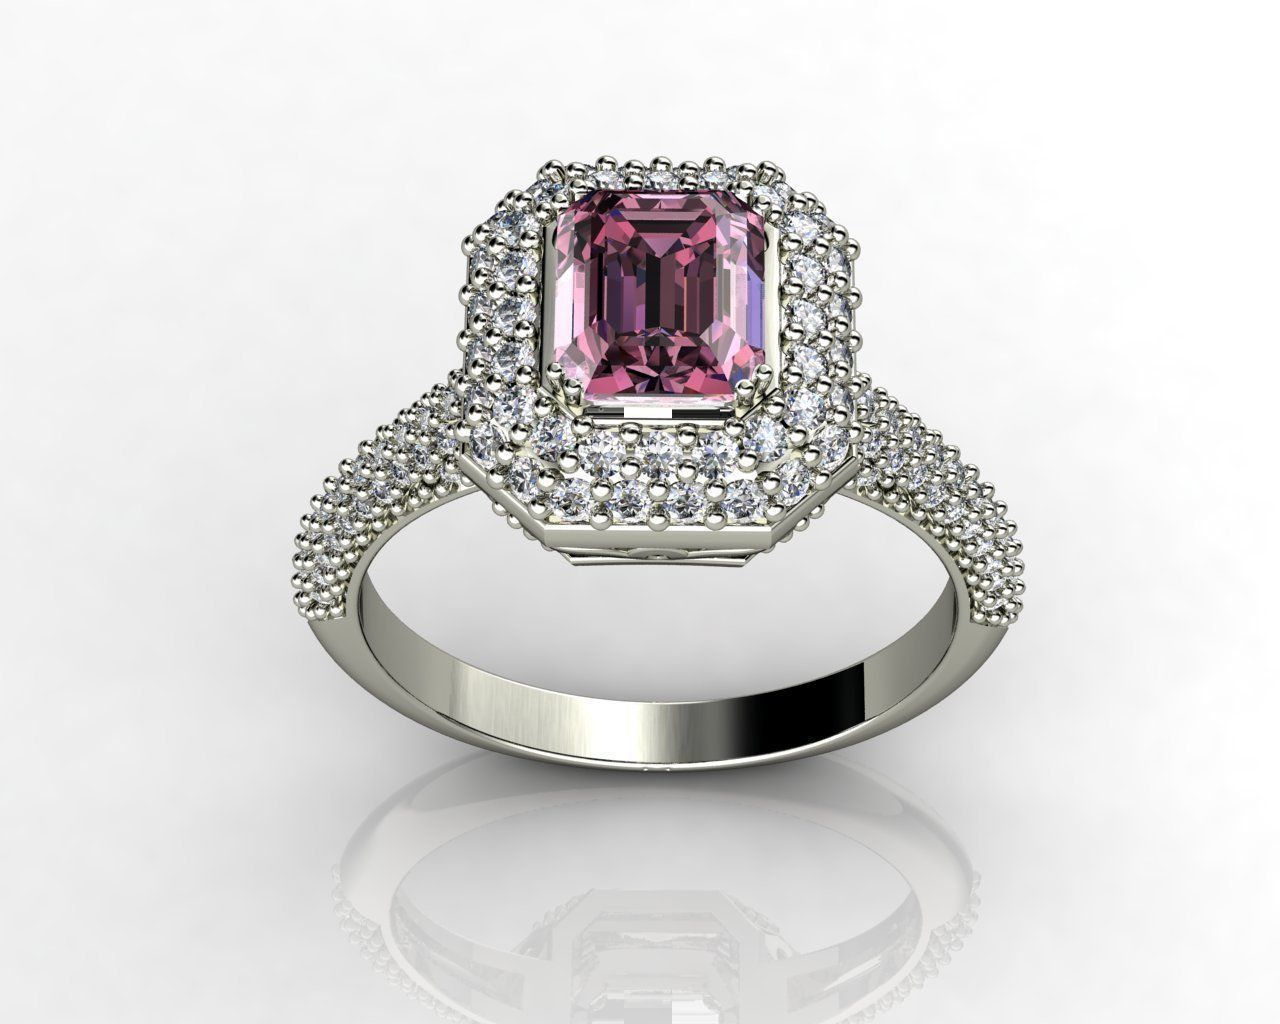 diamond diamonds engagement jewellery rings pink ring round products kl